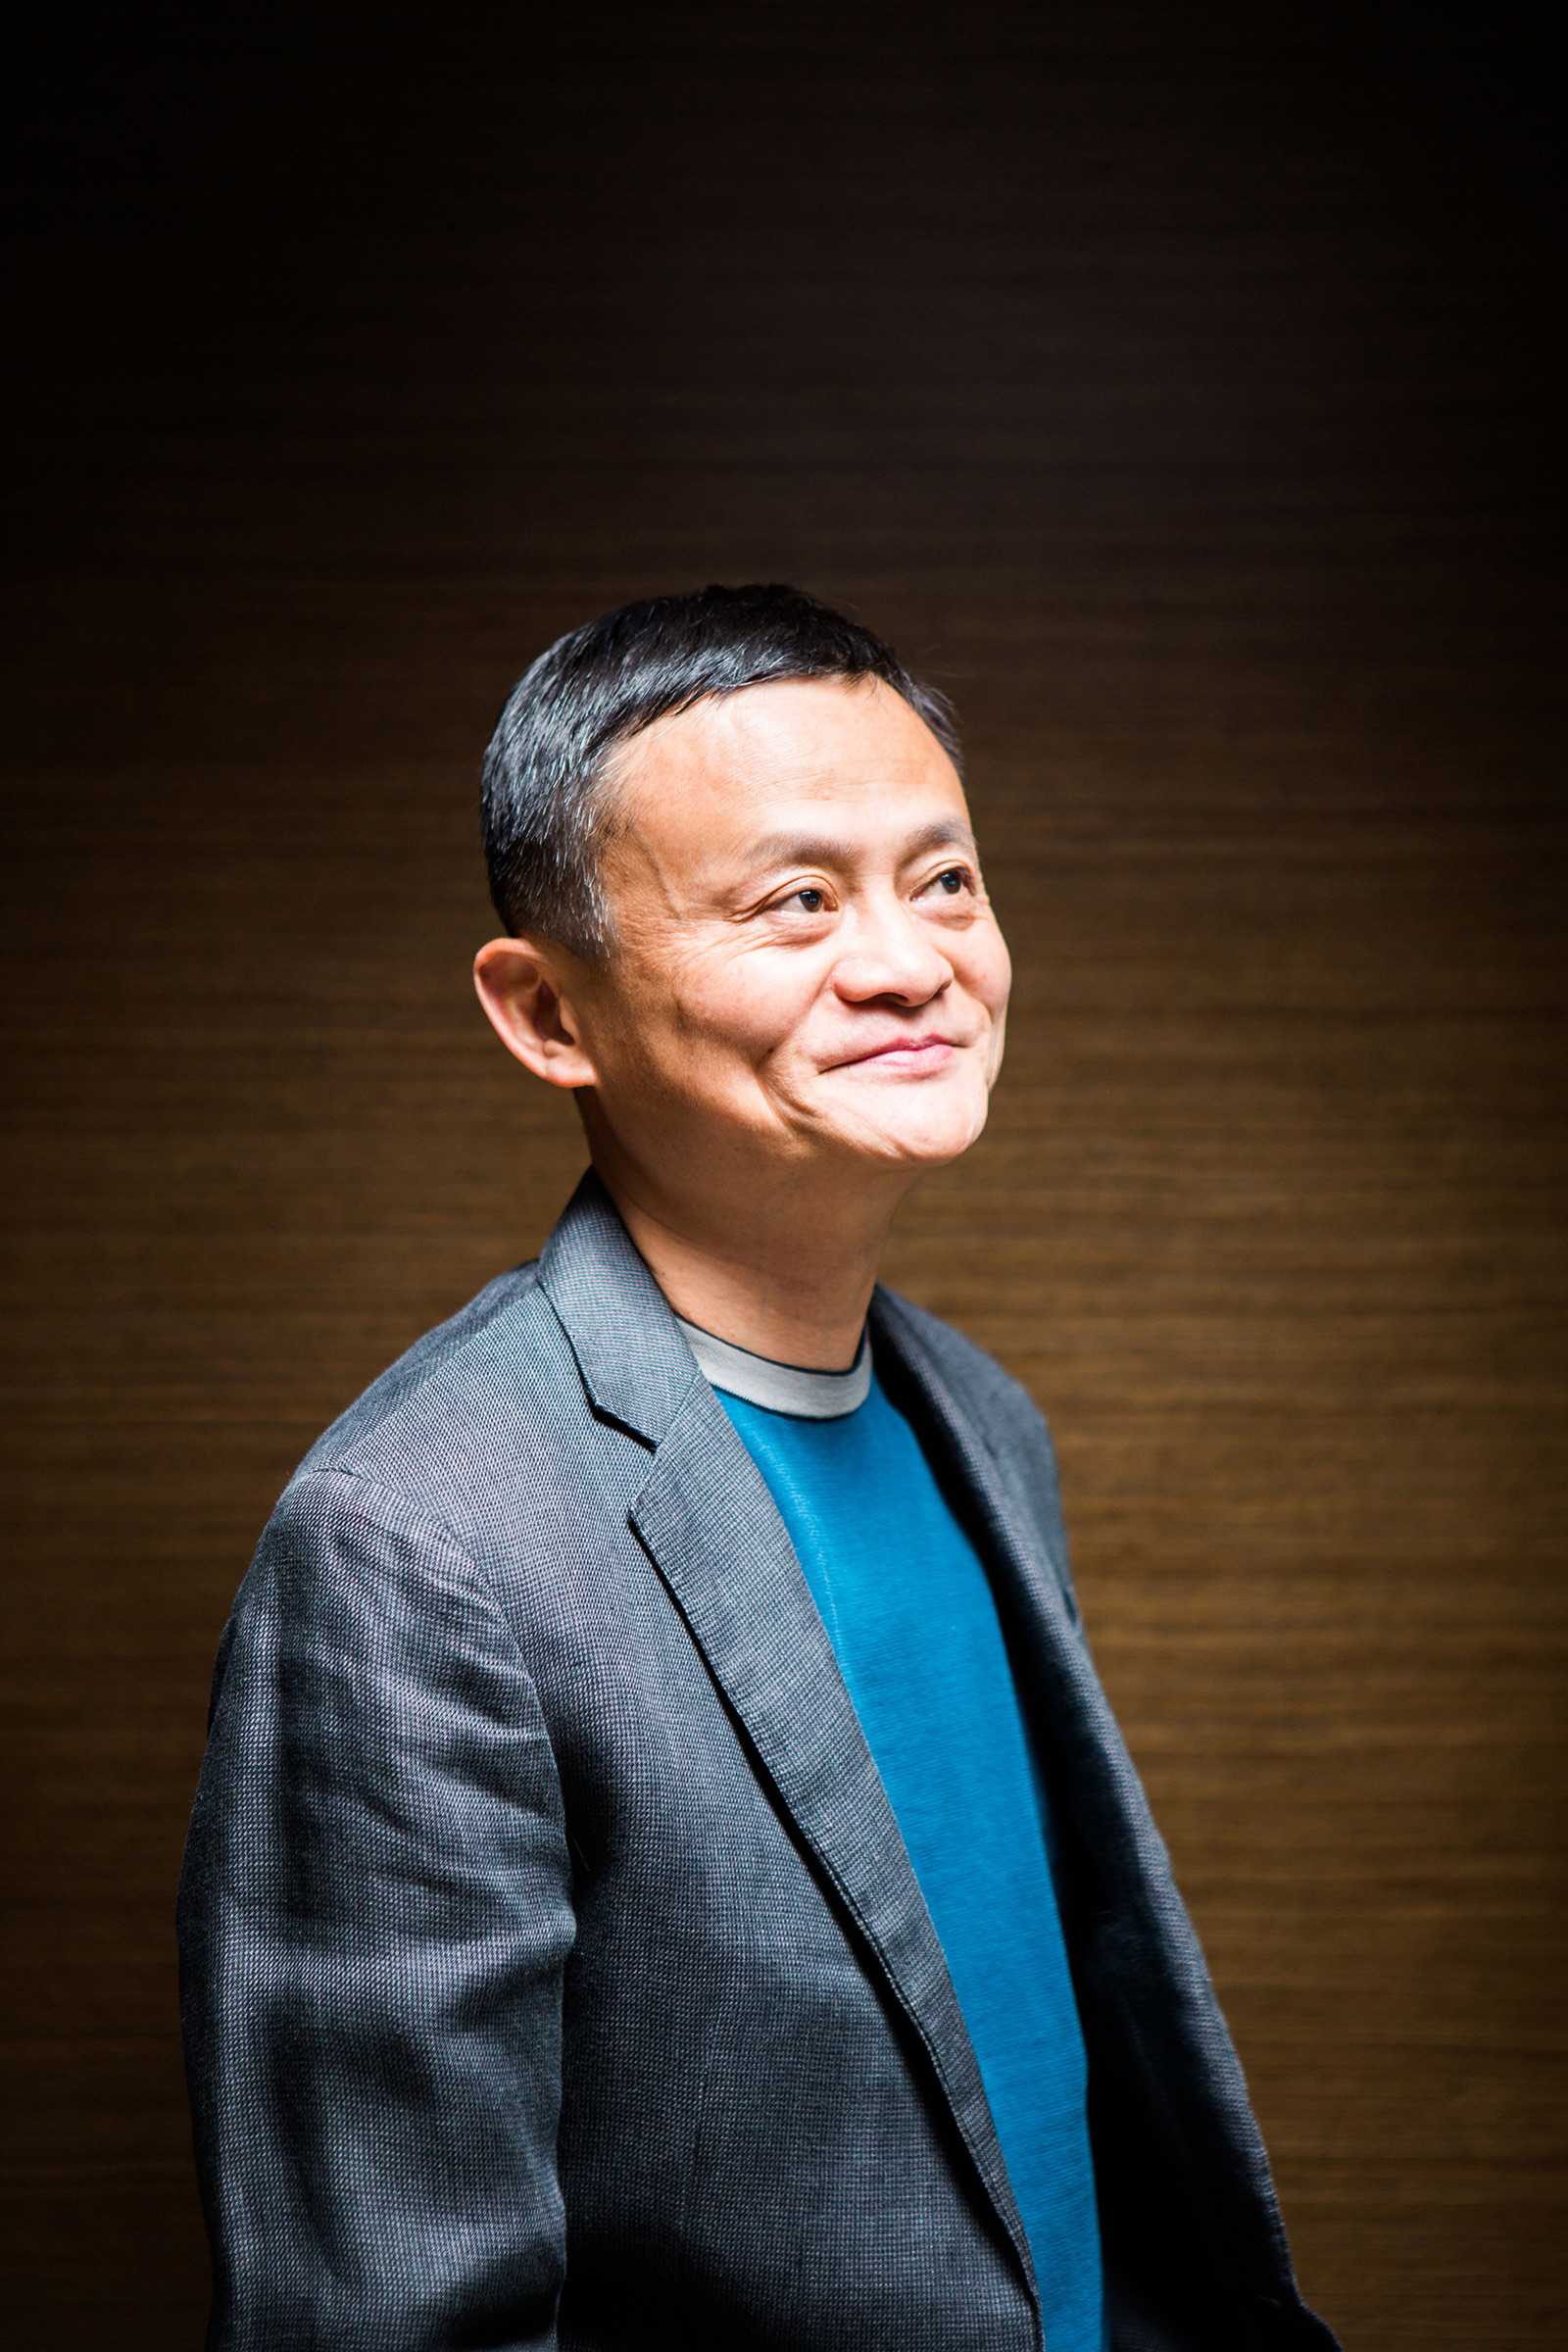 Jack Ma, founder of Alibaba Group, at the company's headquarters in Hangzhou, China, in March 2017.